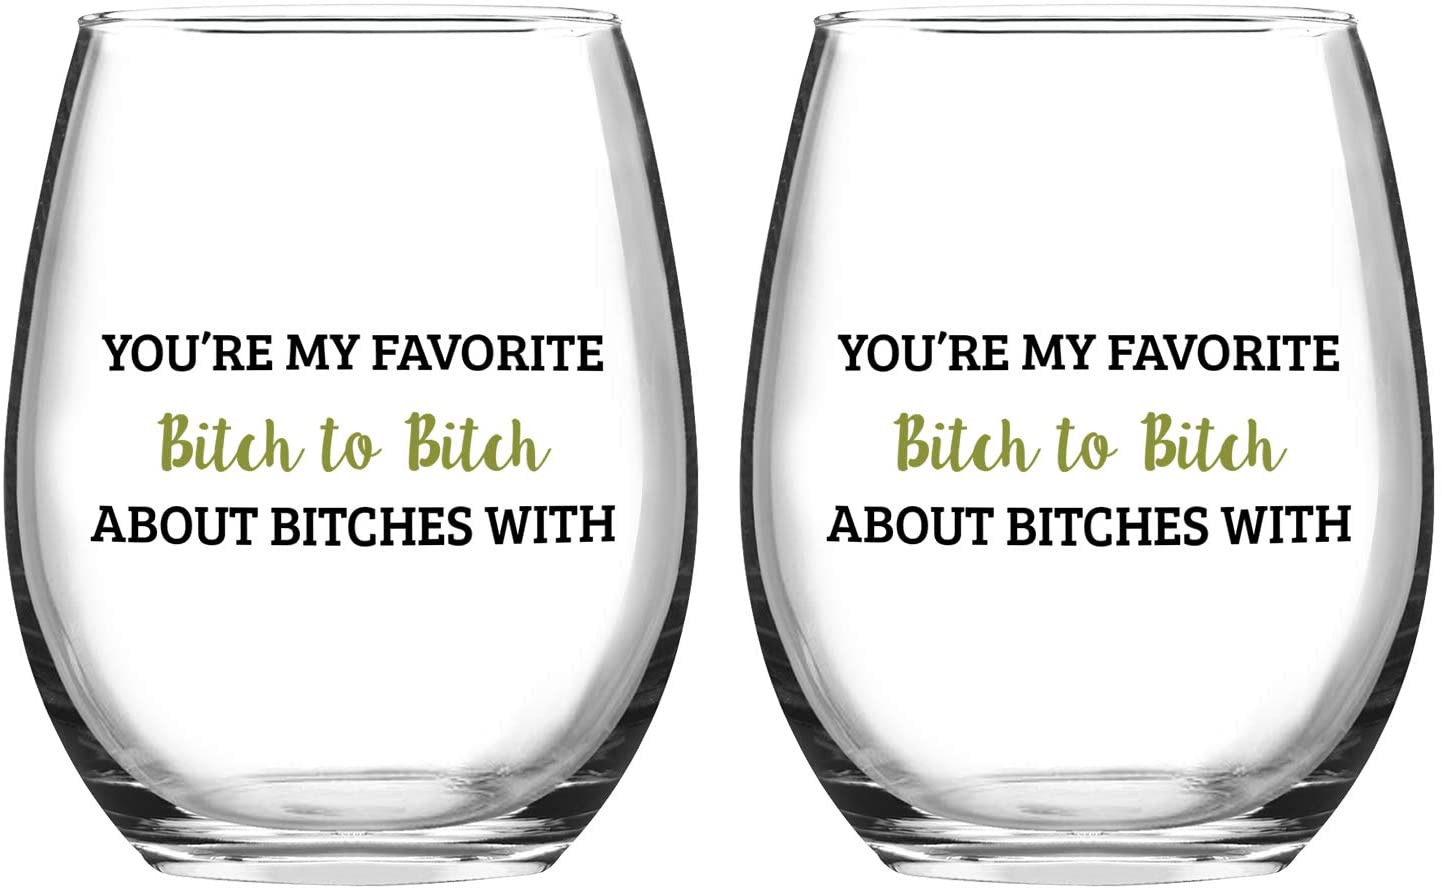 Set of 2 Wine Glasses You're My Favorite Stemless Wine Glasses for Girls Bachelorette Party Friends Women Her, 15 Oz